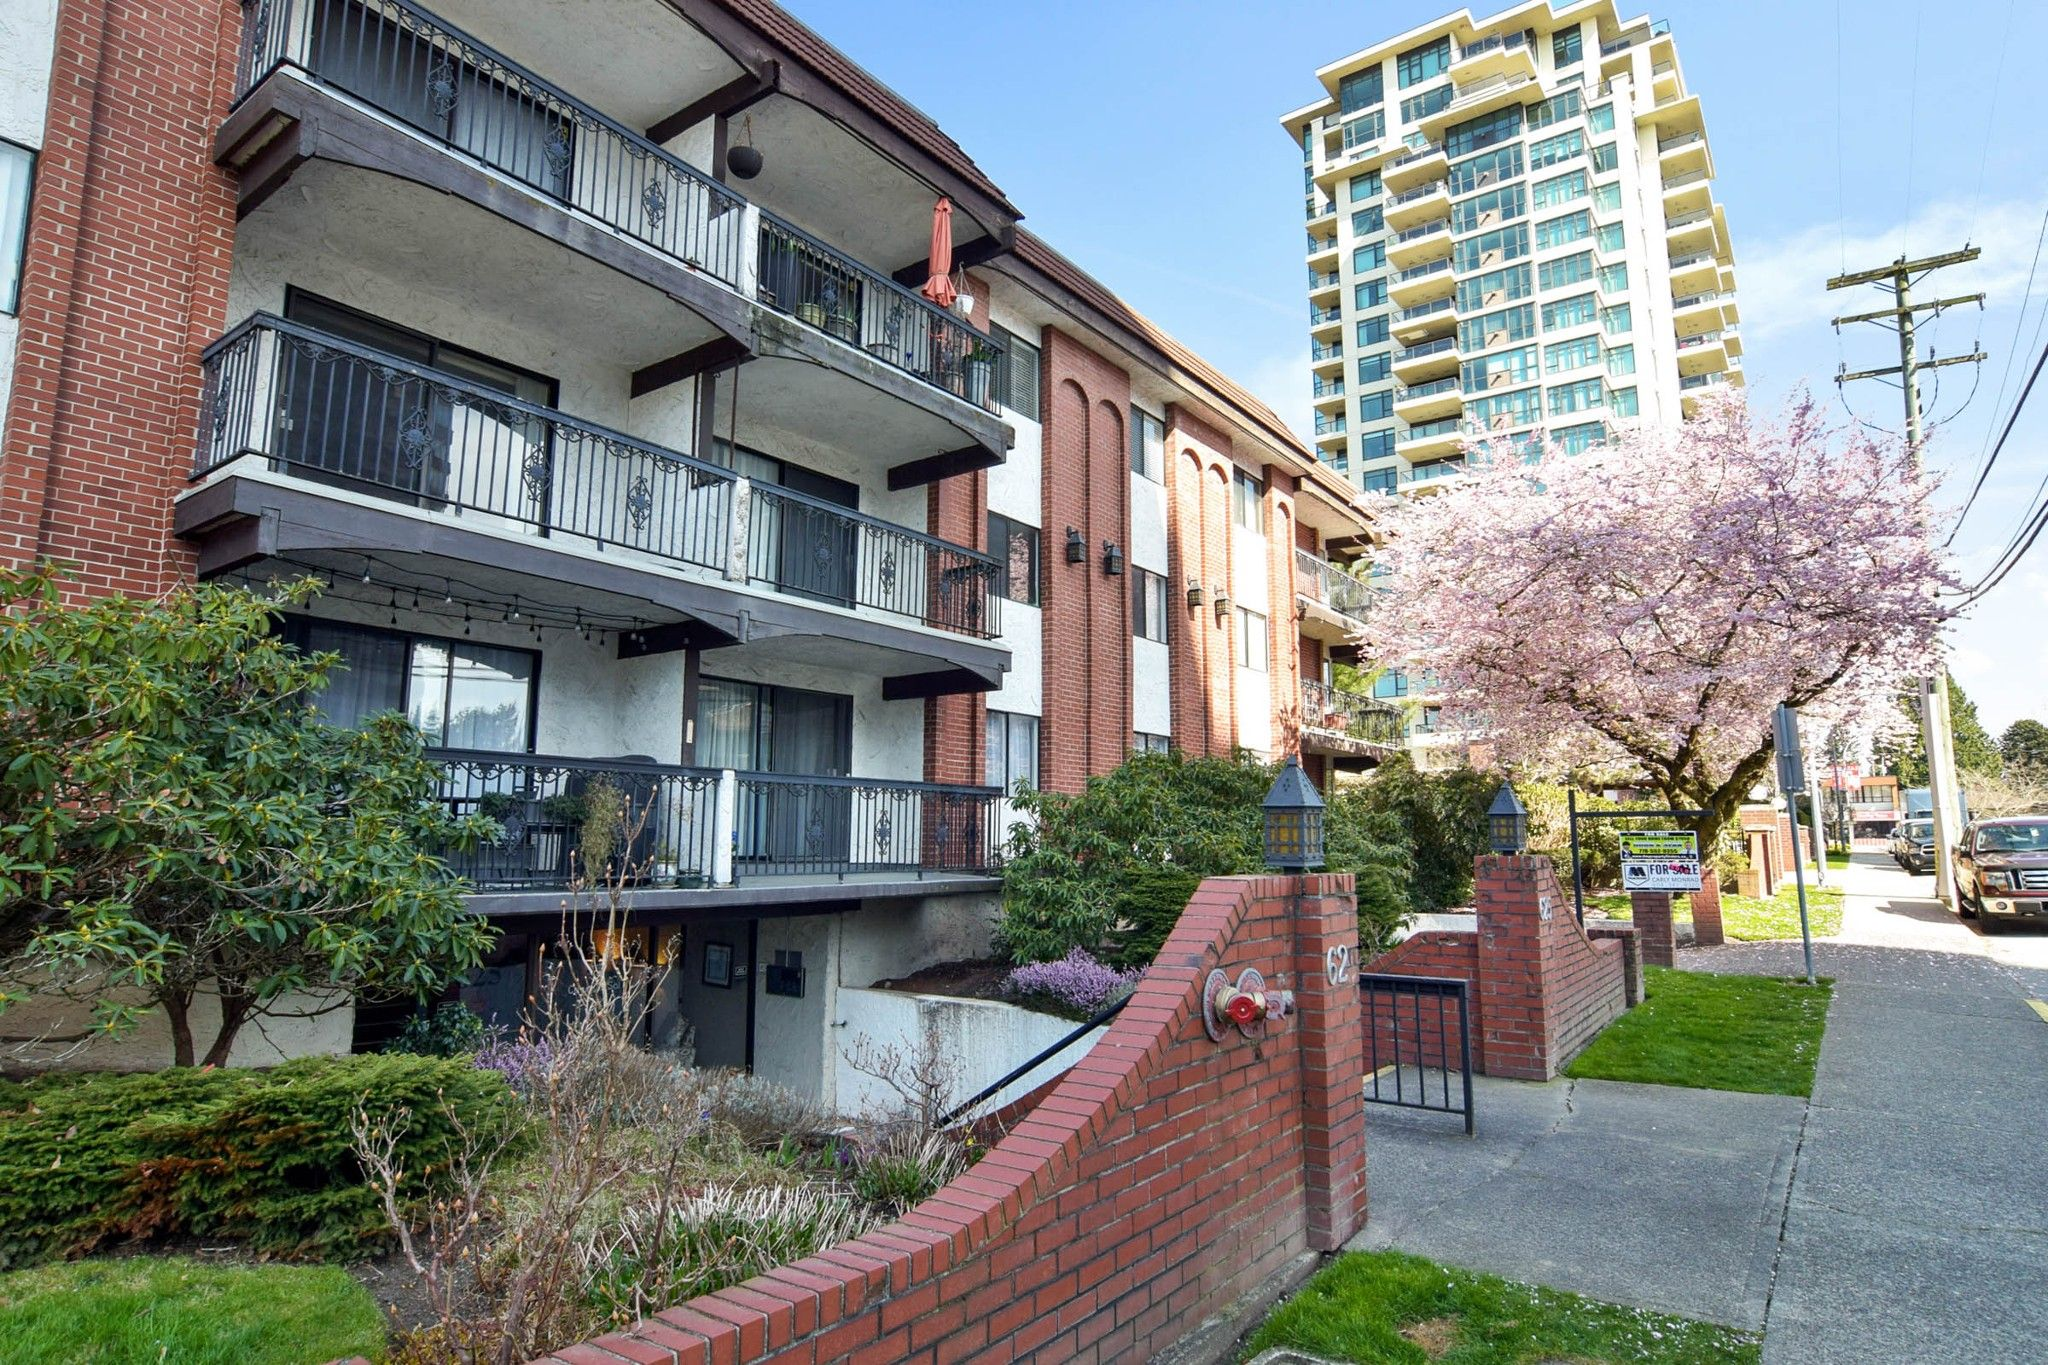 """Main Photo: 310 625 HAMILTON Street in New Westminster: Uptown NW Condo for sale in """"CASA DEL SOL"""" : MLS®# R2559844"""